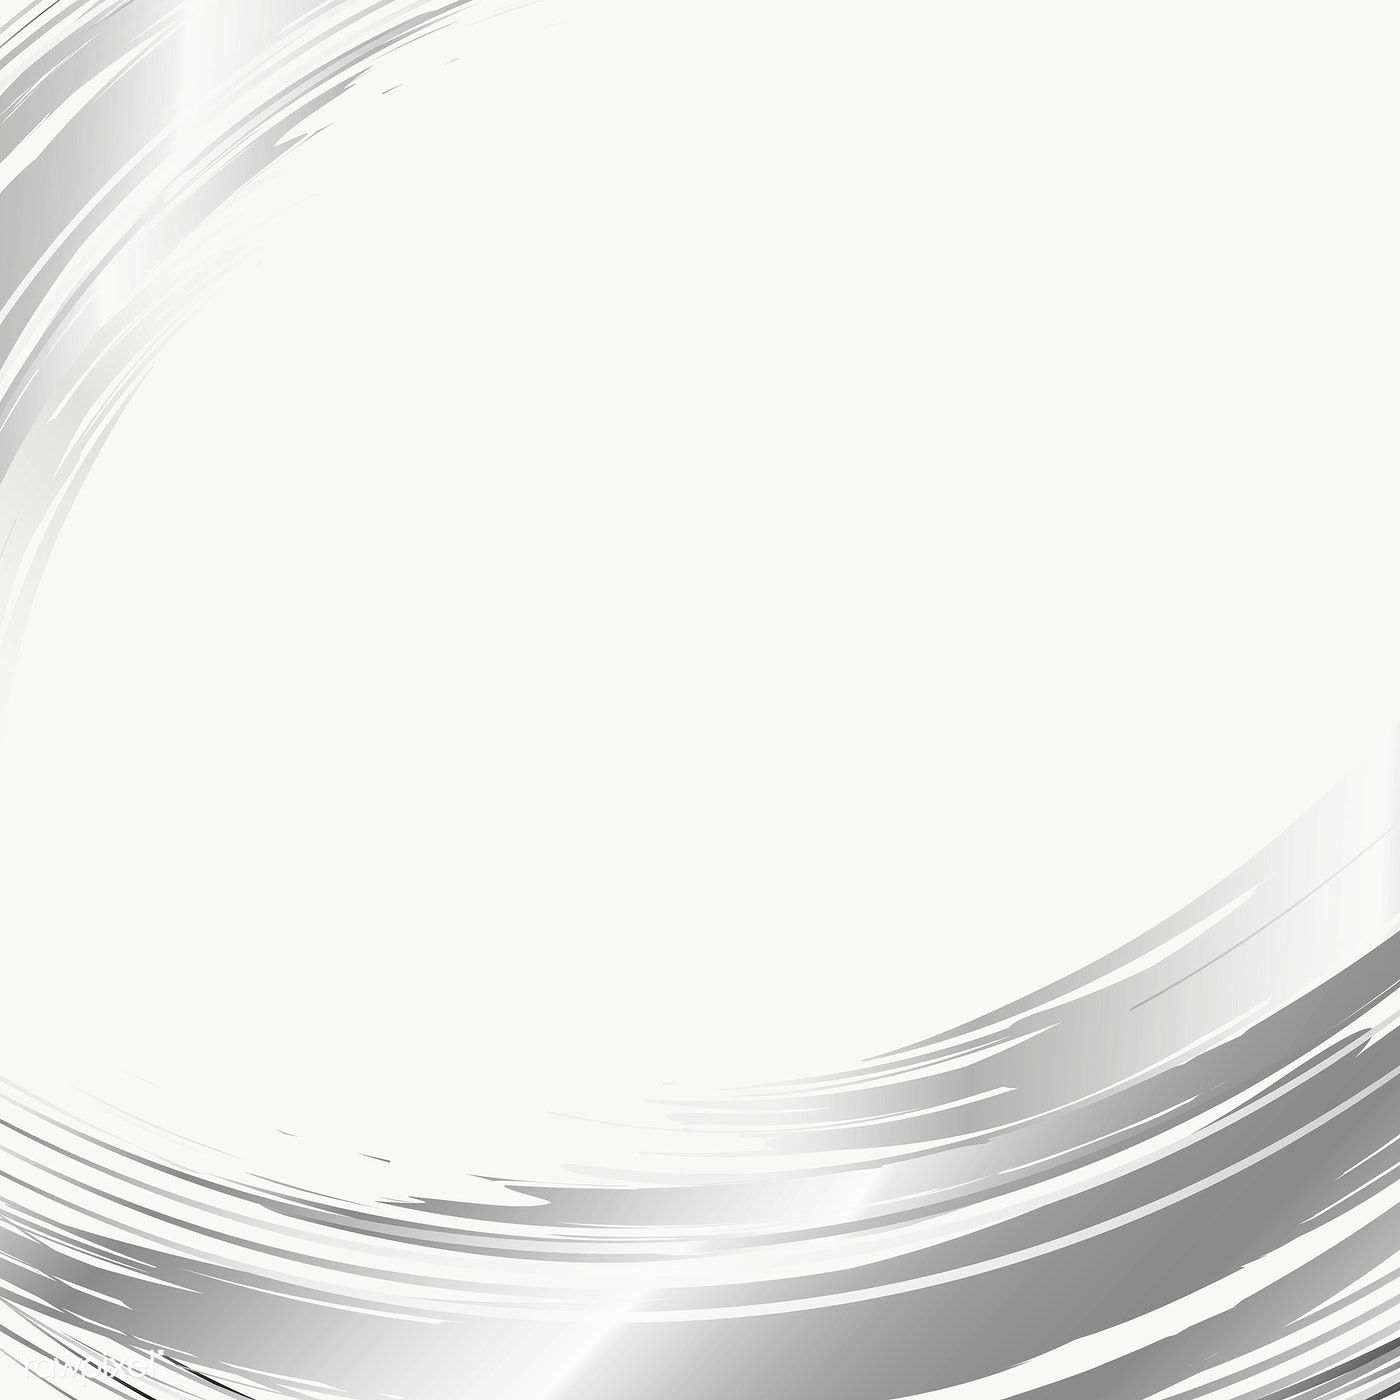 Gray Brush Stroke Design Element Free Image By Rawpixel Com Nunny Design Element Brush Strokes Free Images